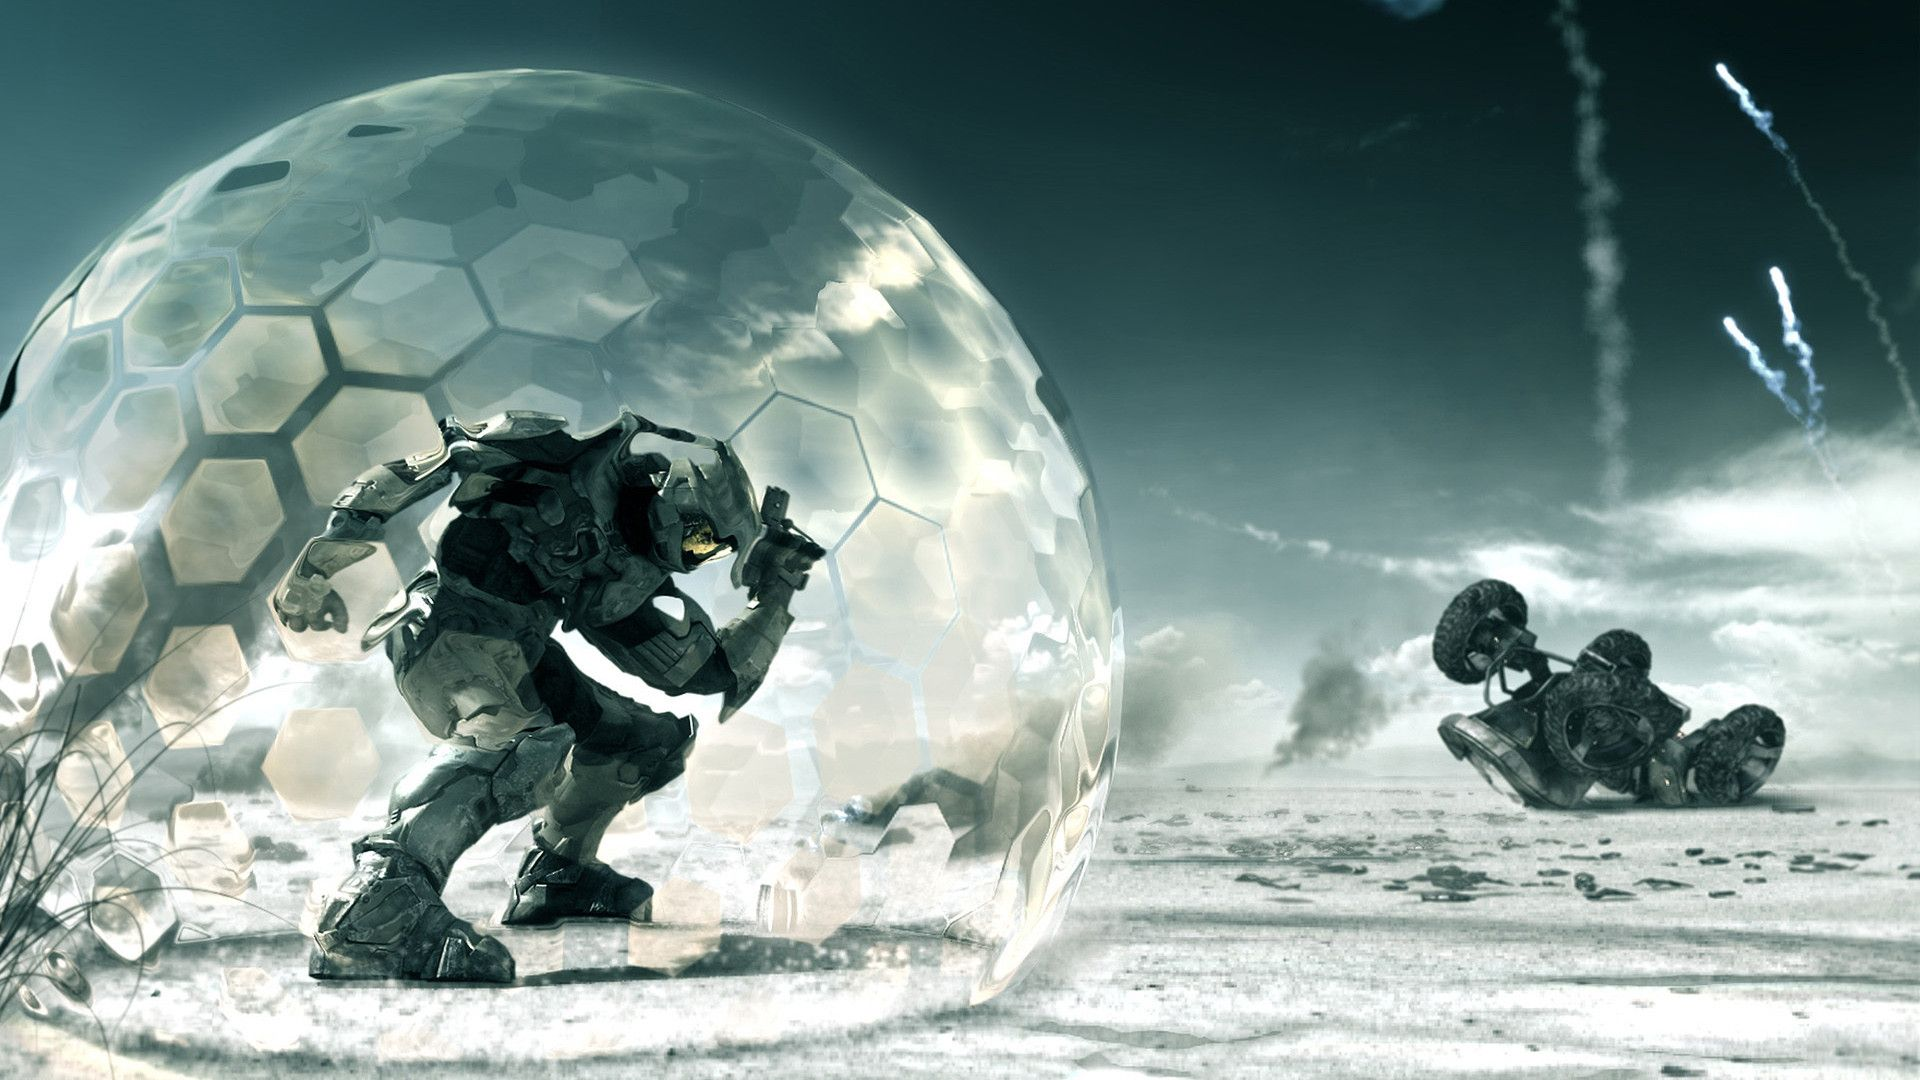 Halo HD Wallpapers - Wallpaper Cave